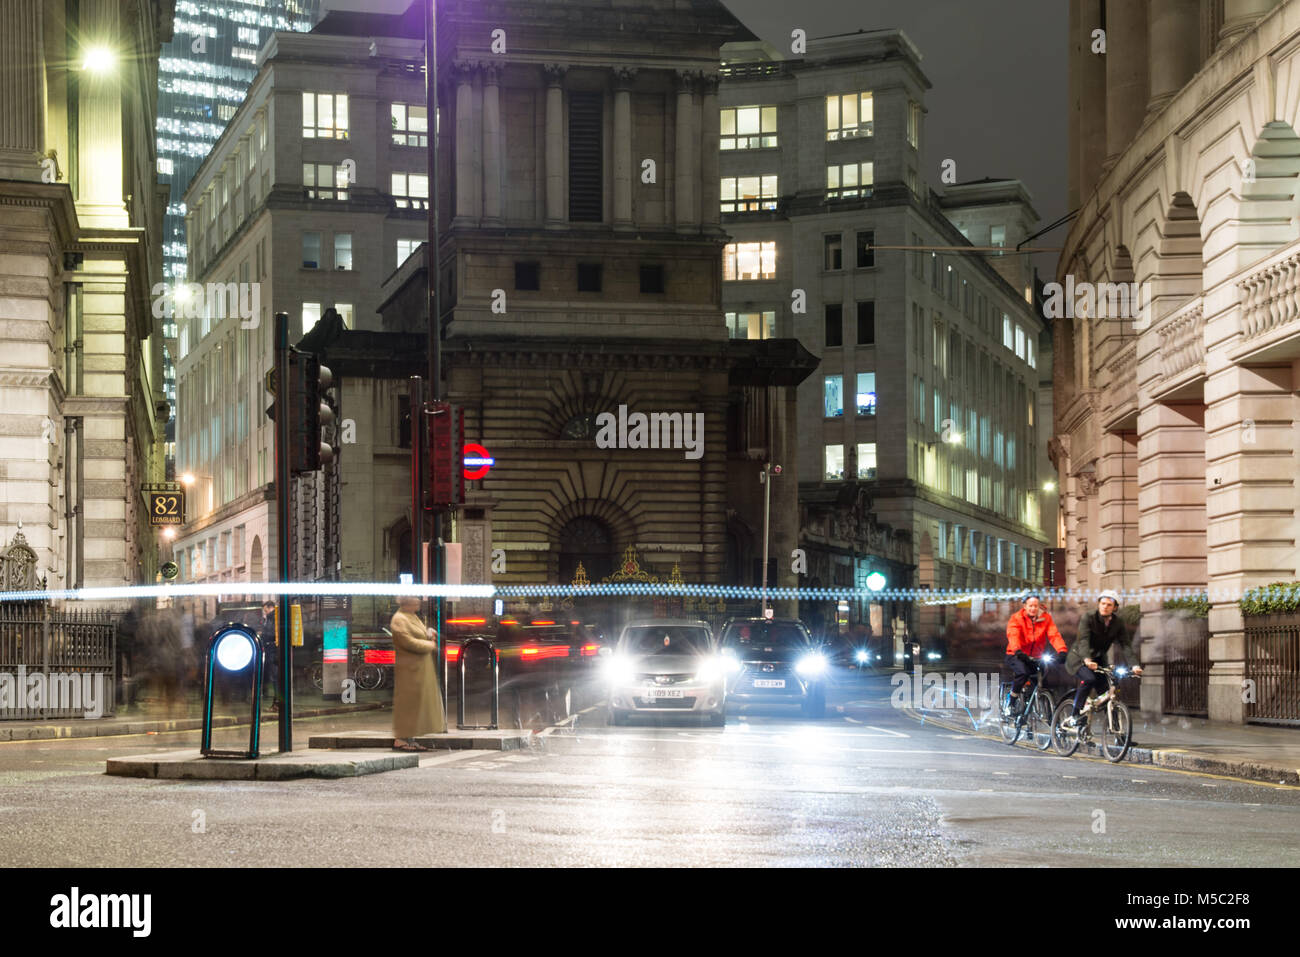 London, England, UK - January 11, 2018: Traffic waits at signals at Bank junction in the city of London, with St - Stock Image